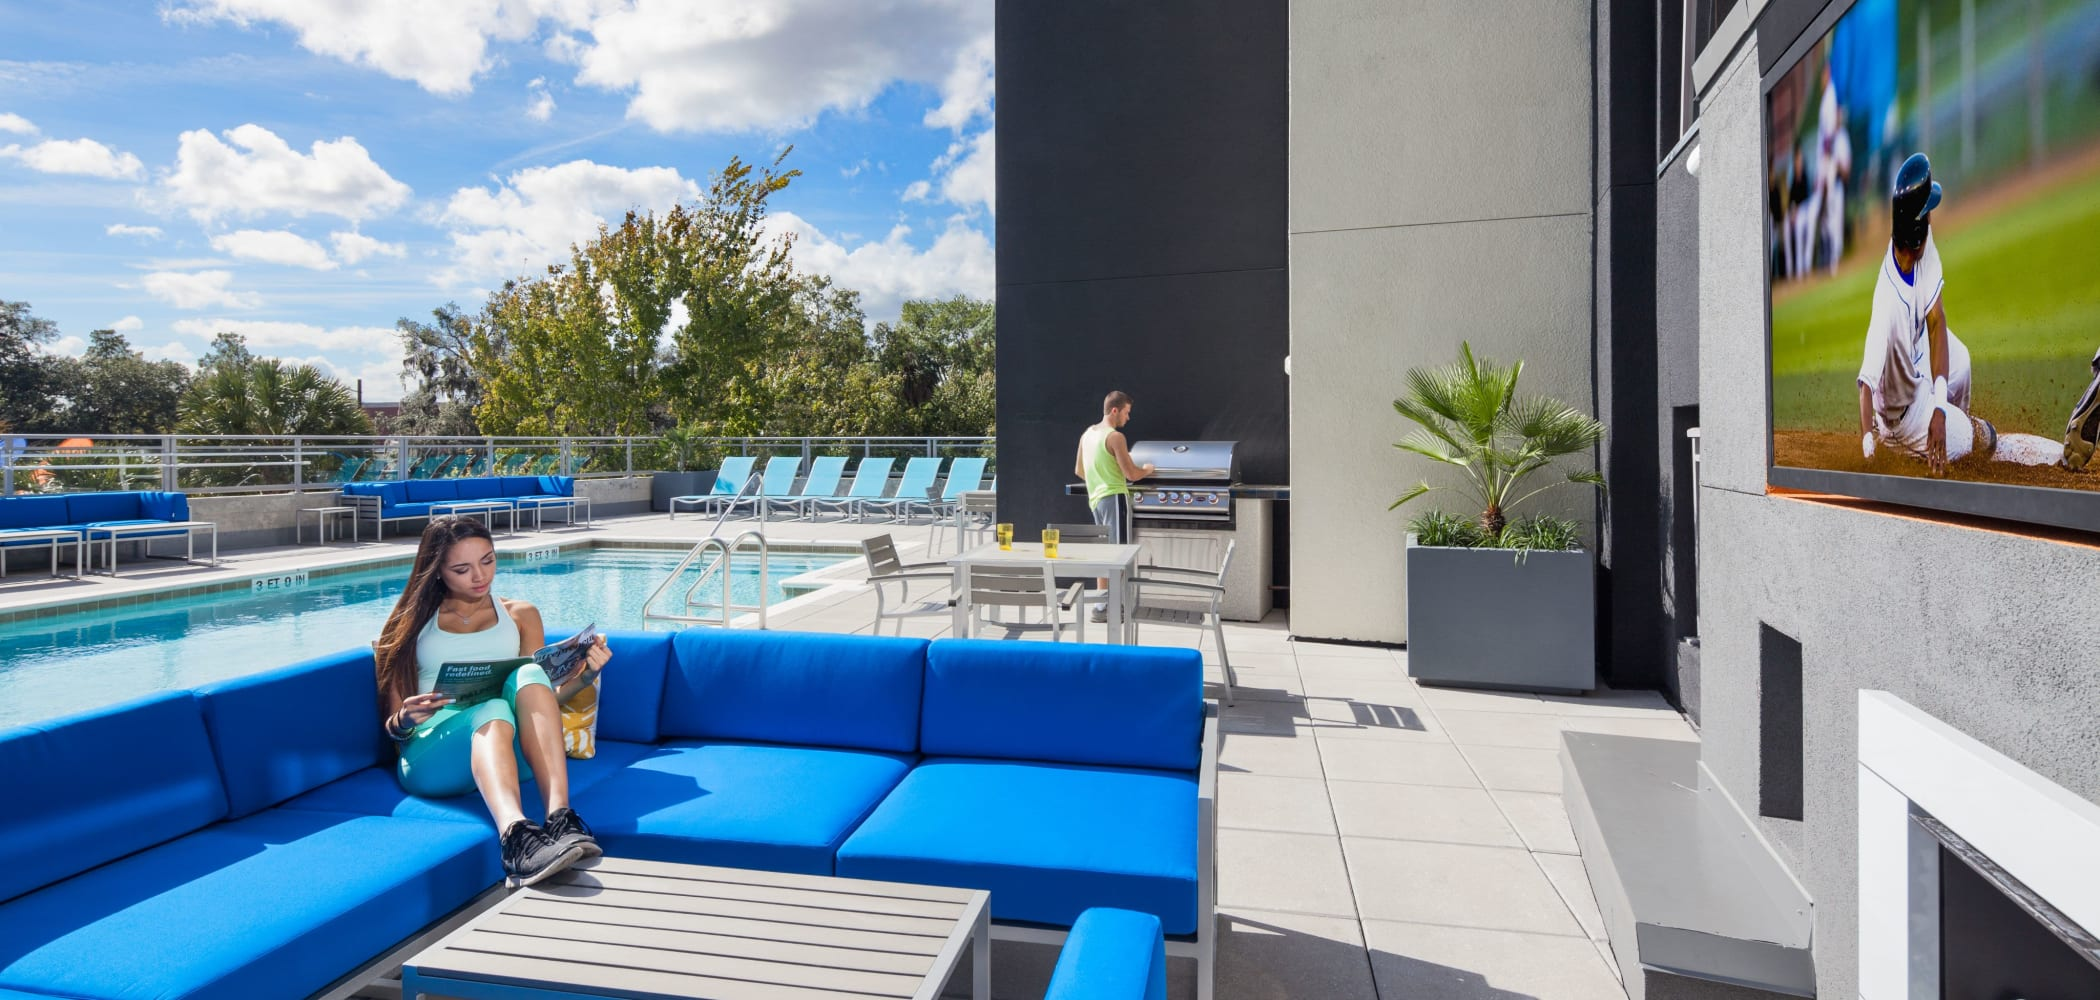 Outdoor lounge and grilling station at Social 28 in Gainesville, Florida